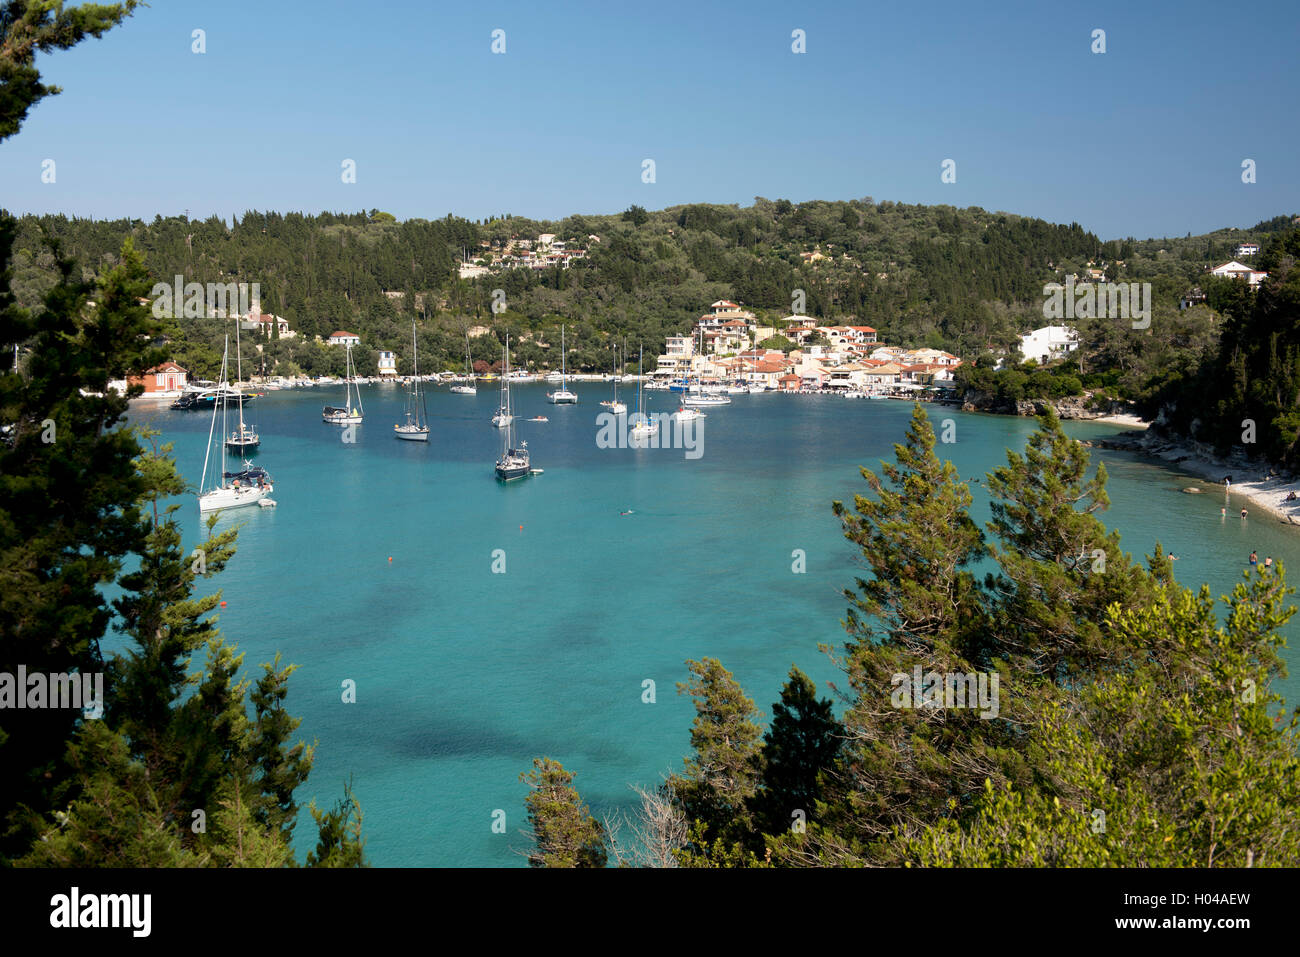 An aerial view of Lakka harbour and moored yachts, Paxos, The Ionian Islands, The Greek Islands, Greece, Europe - Stock Image